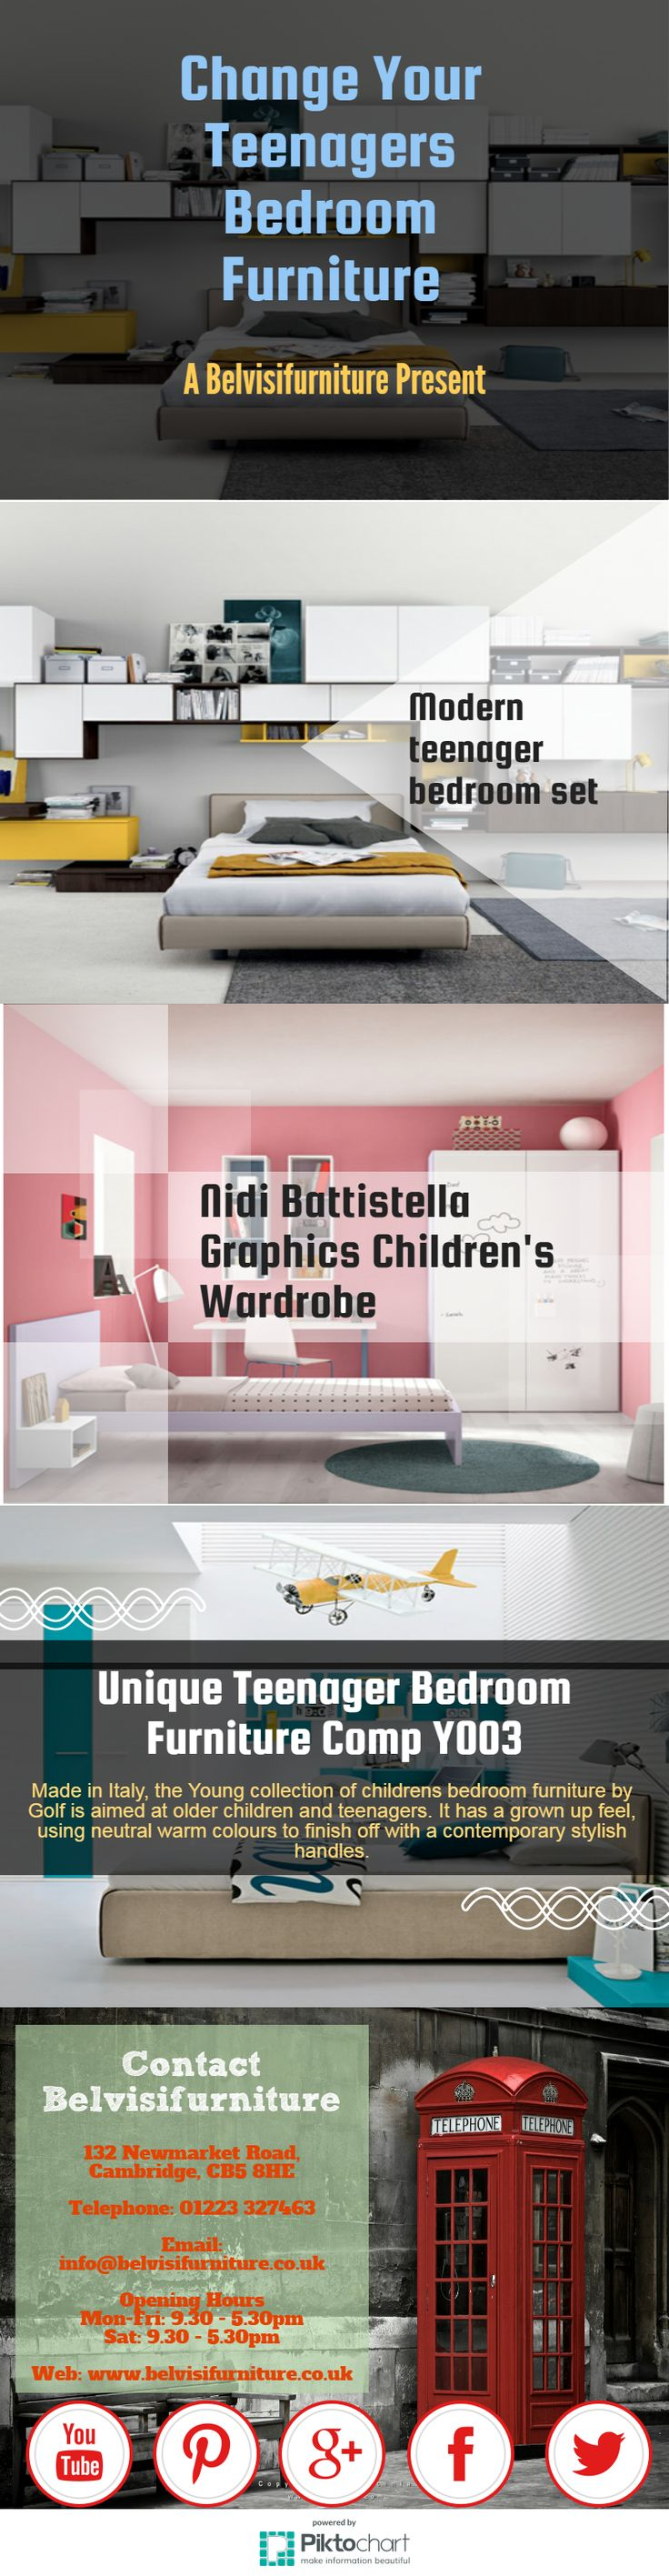 teenagers bedroom furniture. #Infographics Change Your Teenagers Bedroom Furniture P